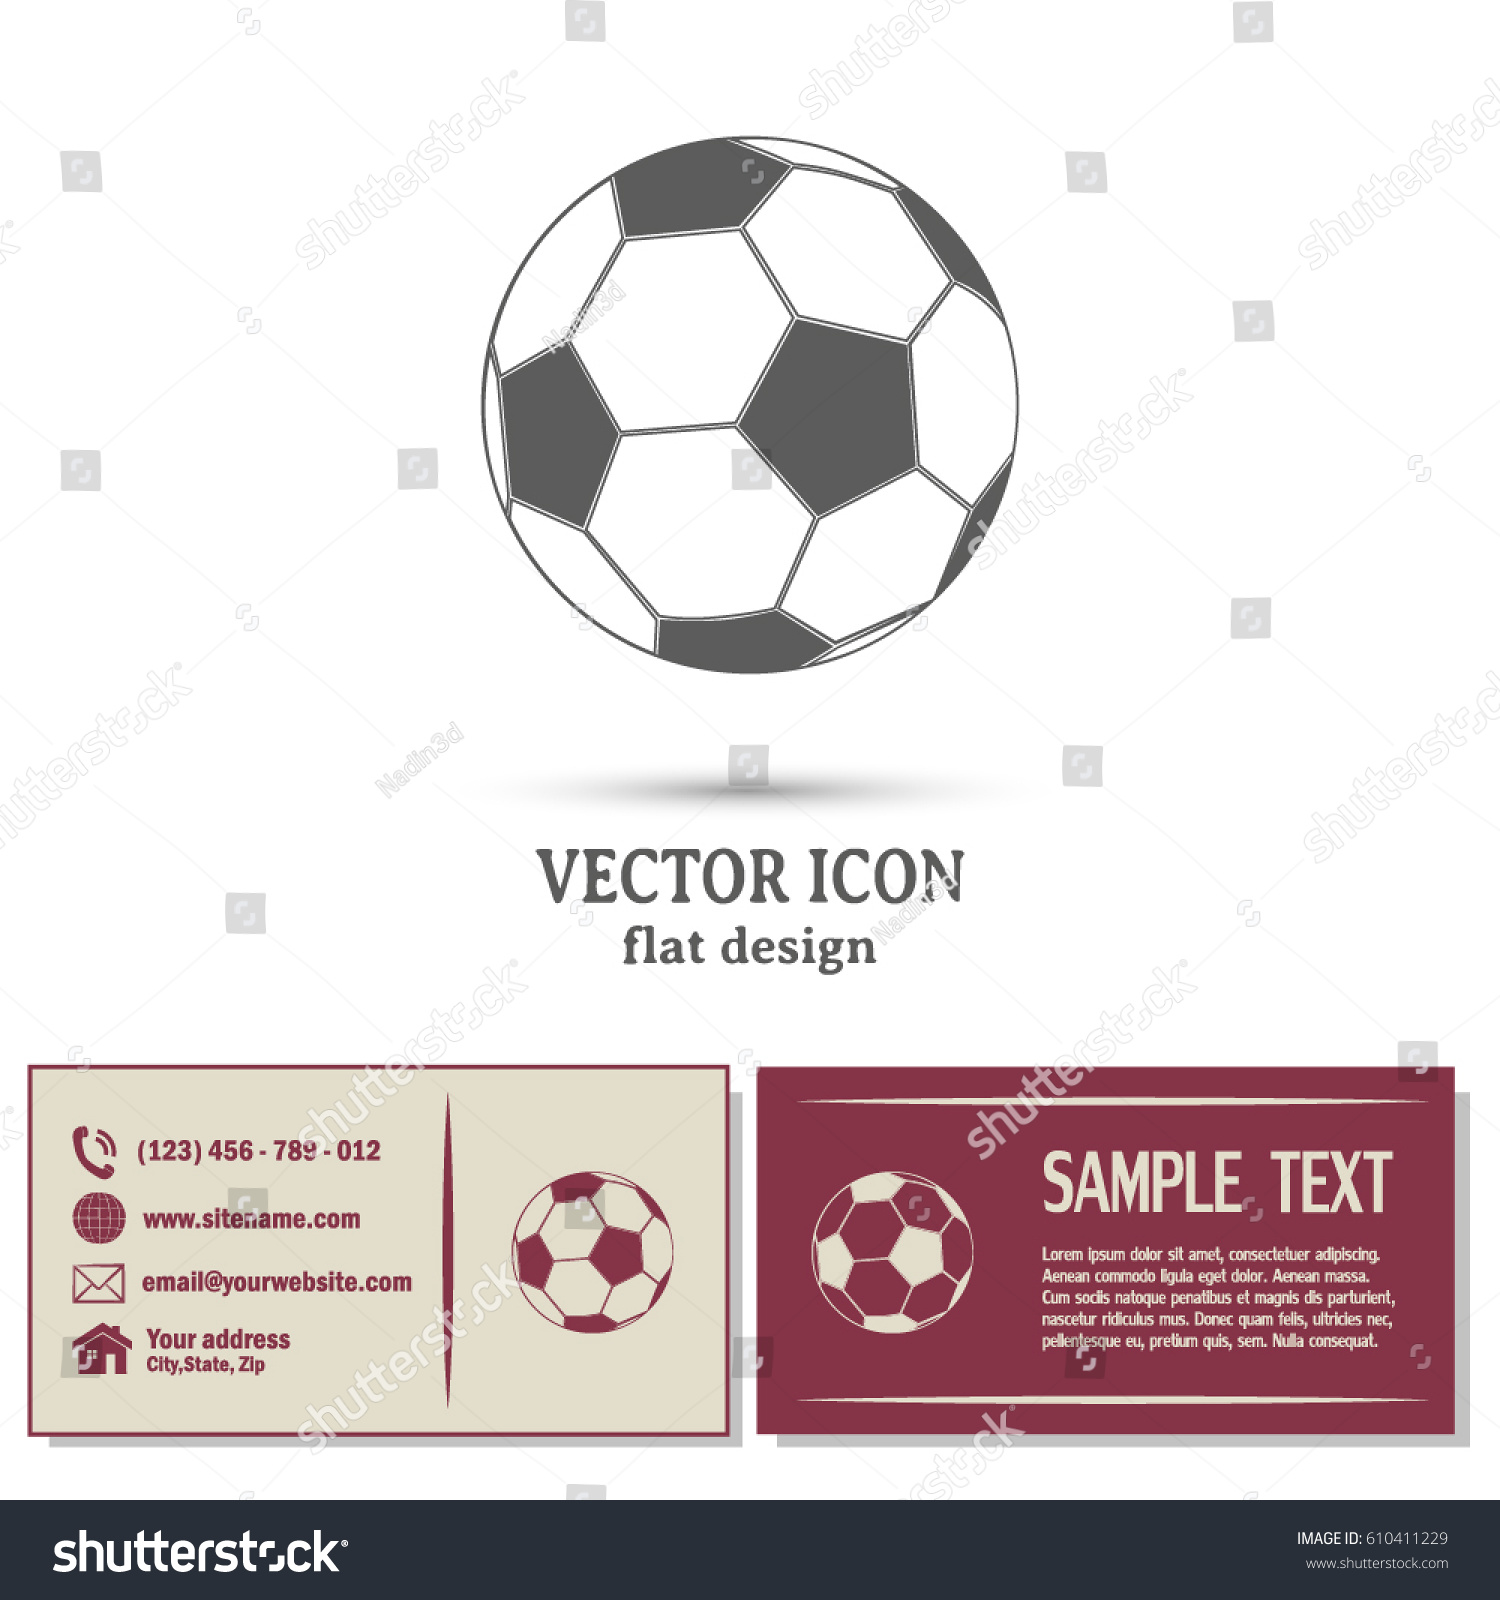 Business cards design soccer ball icon stock vector 610411229 business cards design soccer ball icon magicingreecefo Gallery